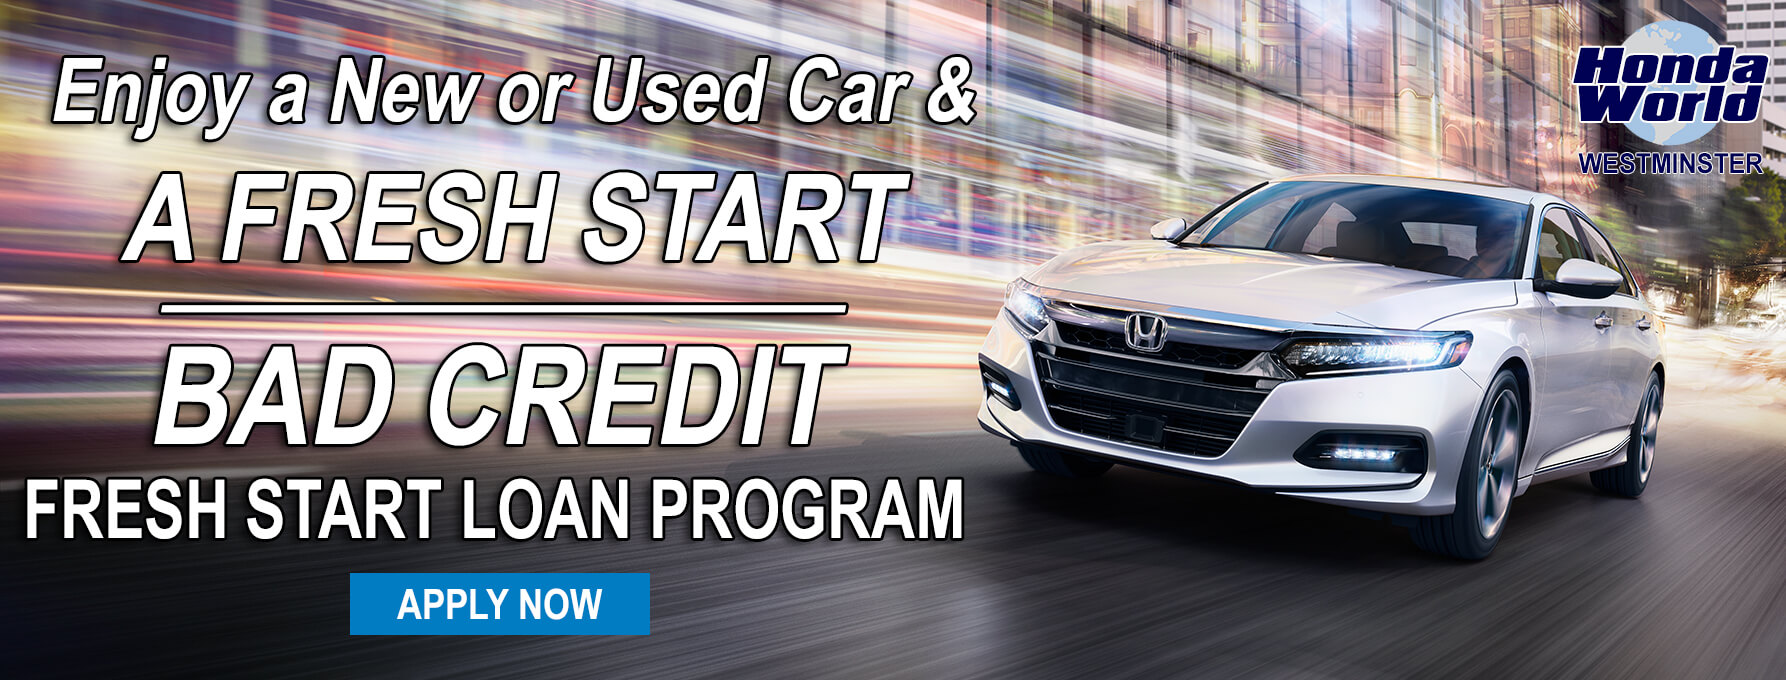 Honda Dealership Orange County >> Bad Credit Car Loans Orange County Ca Westminster Auto Loans Honda World